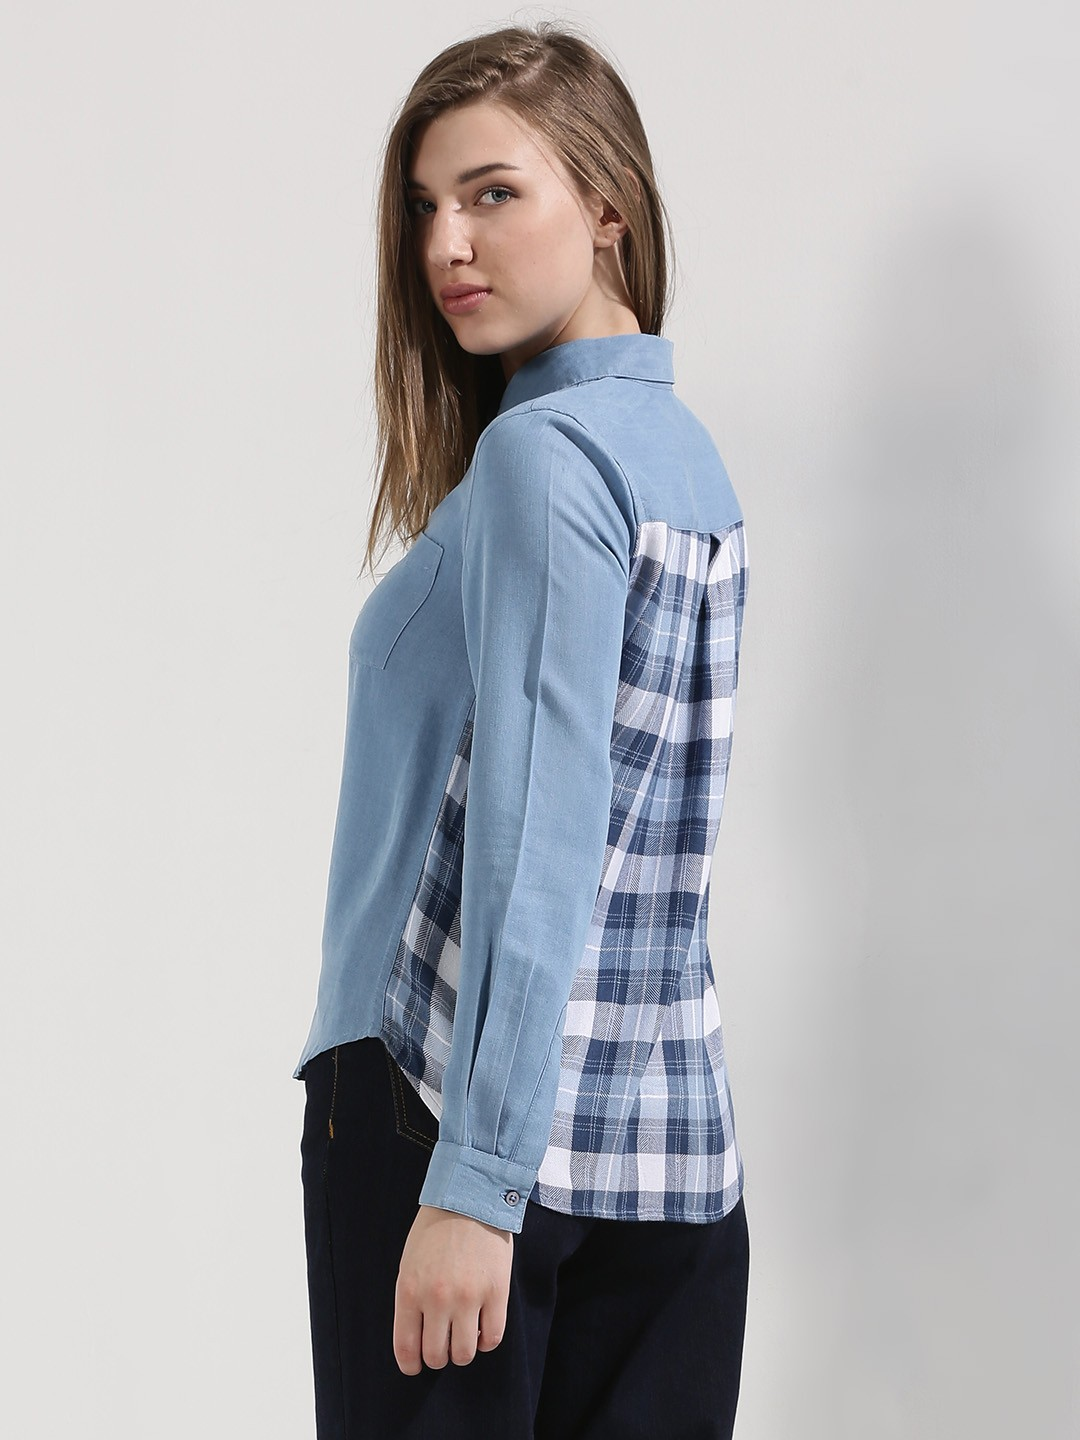 Buy postfold plaid back panel shirt for women women 39 s for Buy plaid shirts online